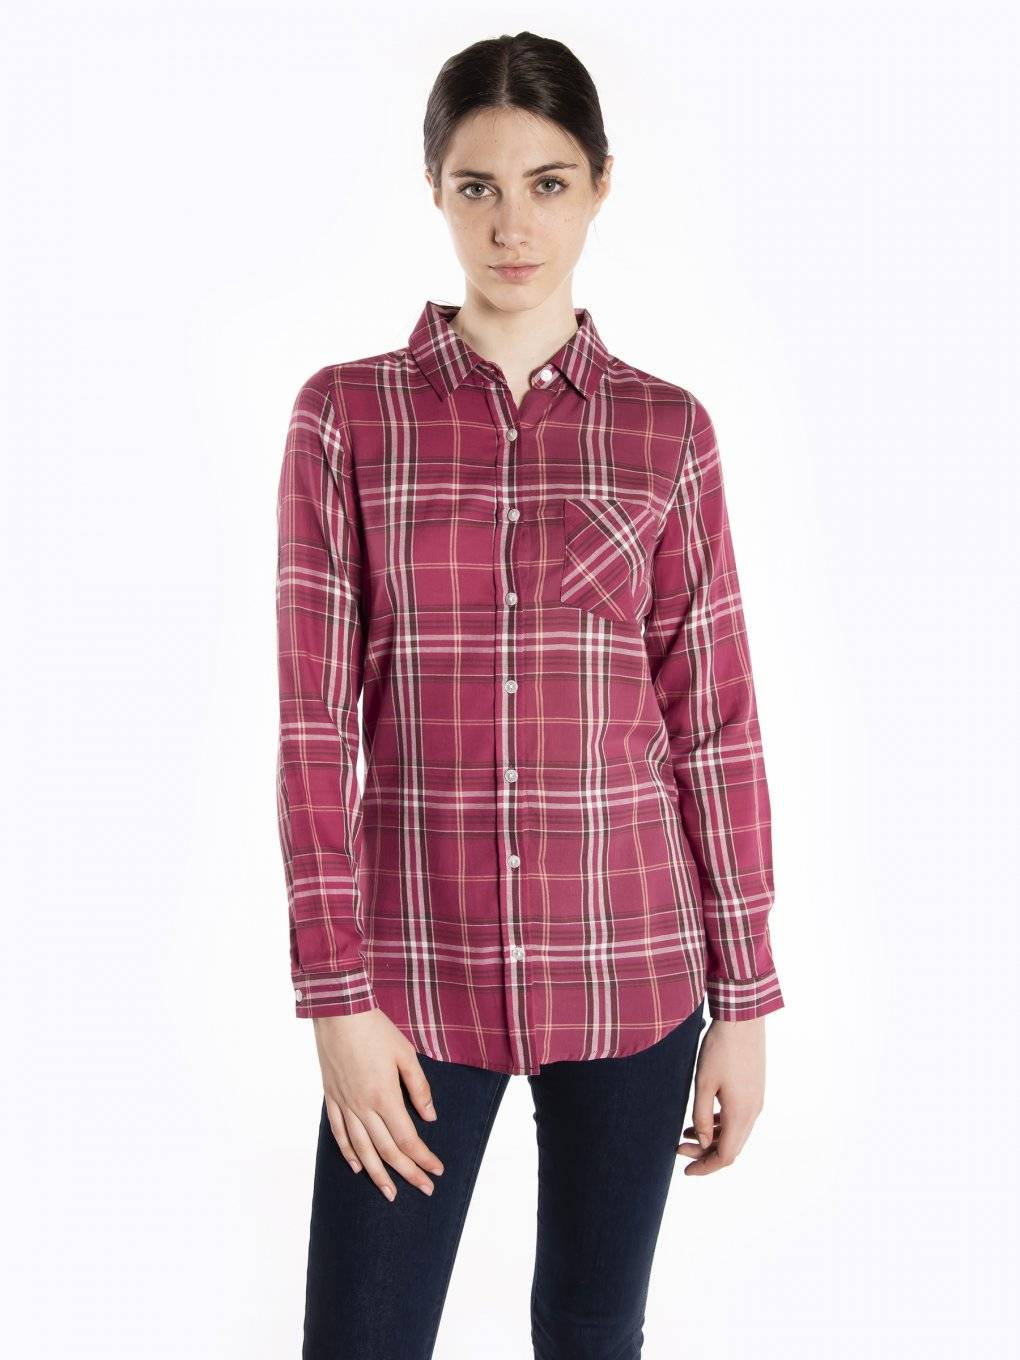 Plaid cotton shirt with message print on back